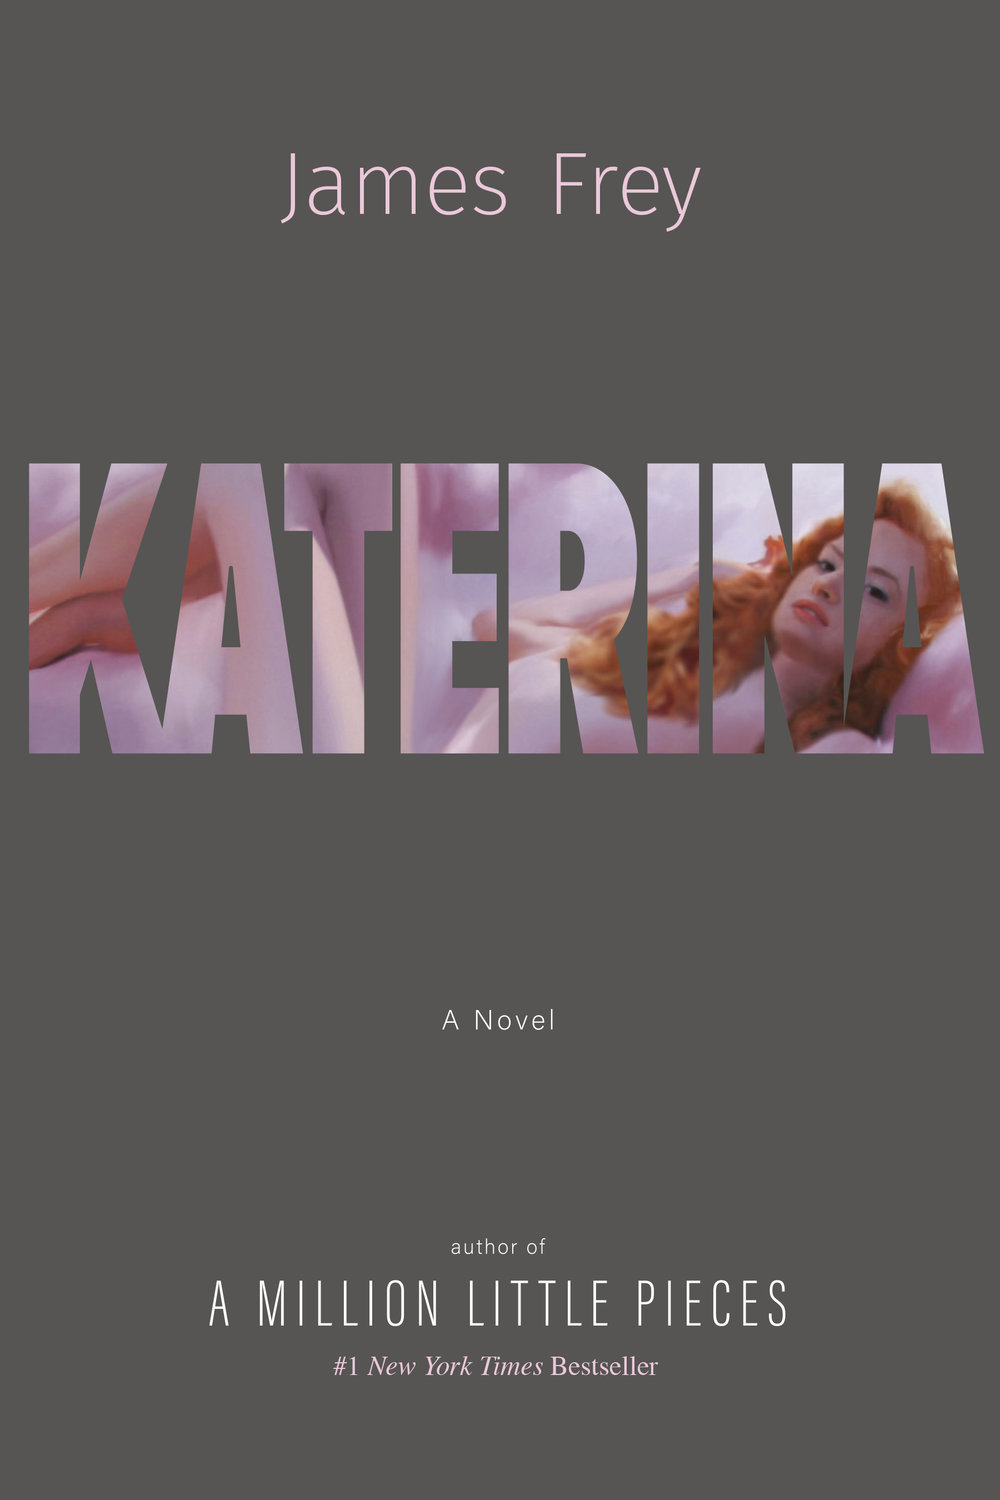 Katerina - John Murray cover.jpg